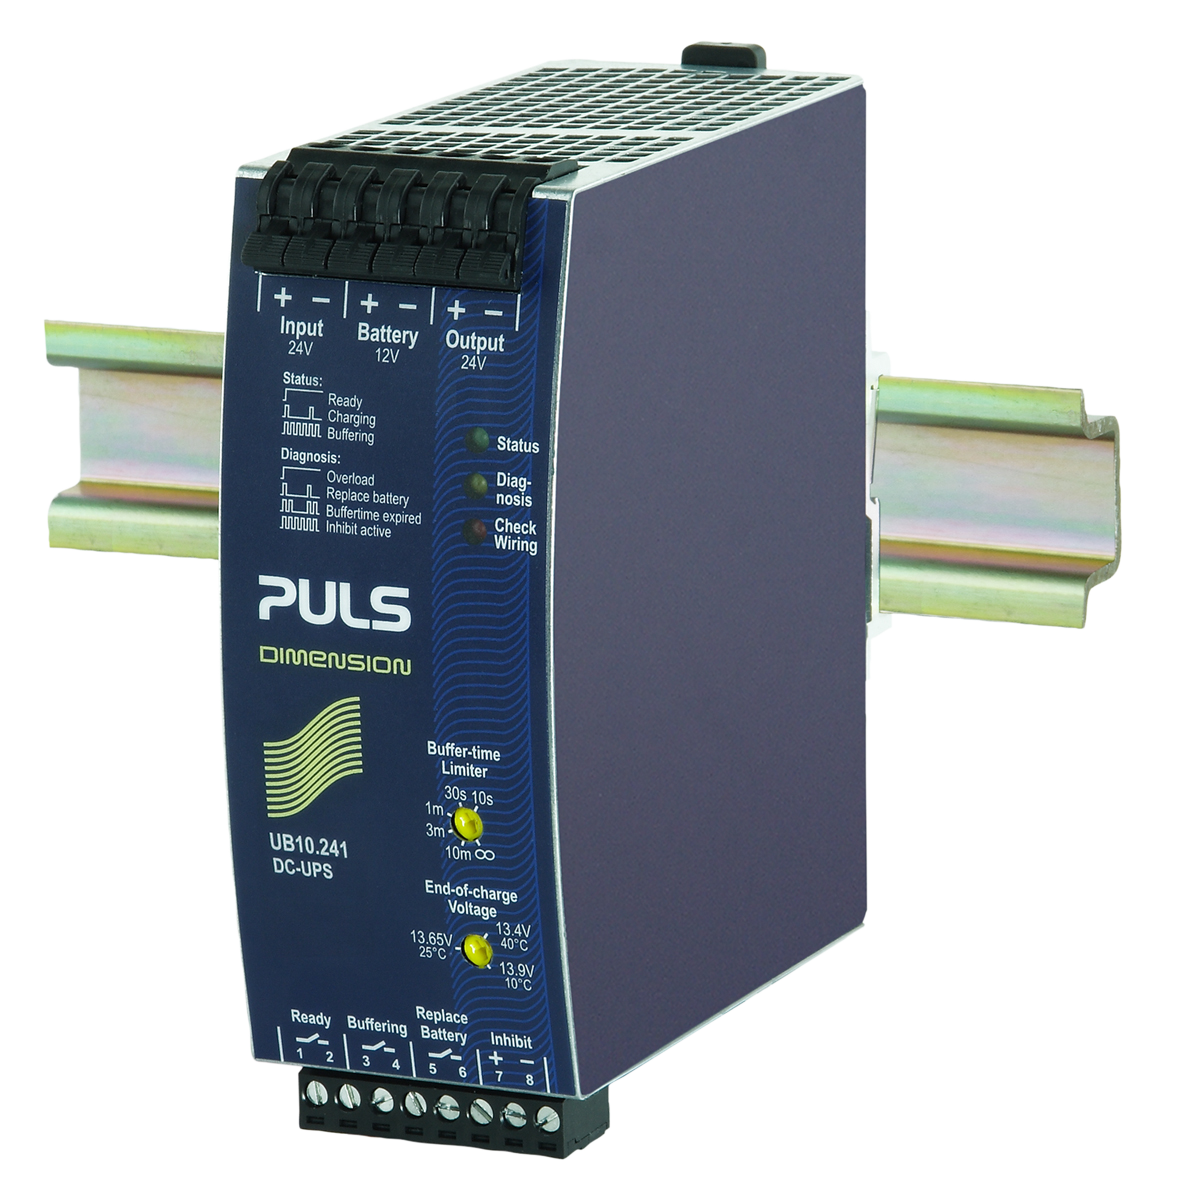 Puls products ub10241 dc ups control unit cheapraybanclubmaster Image collections